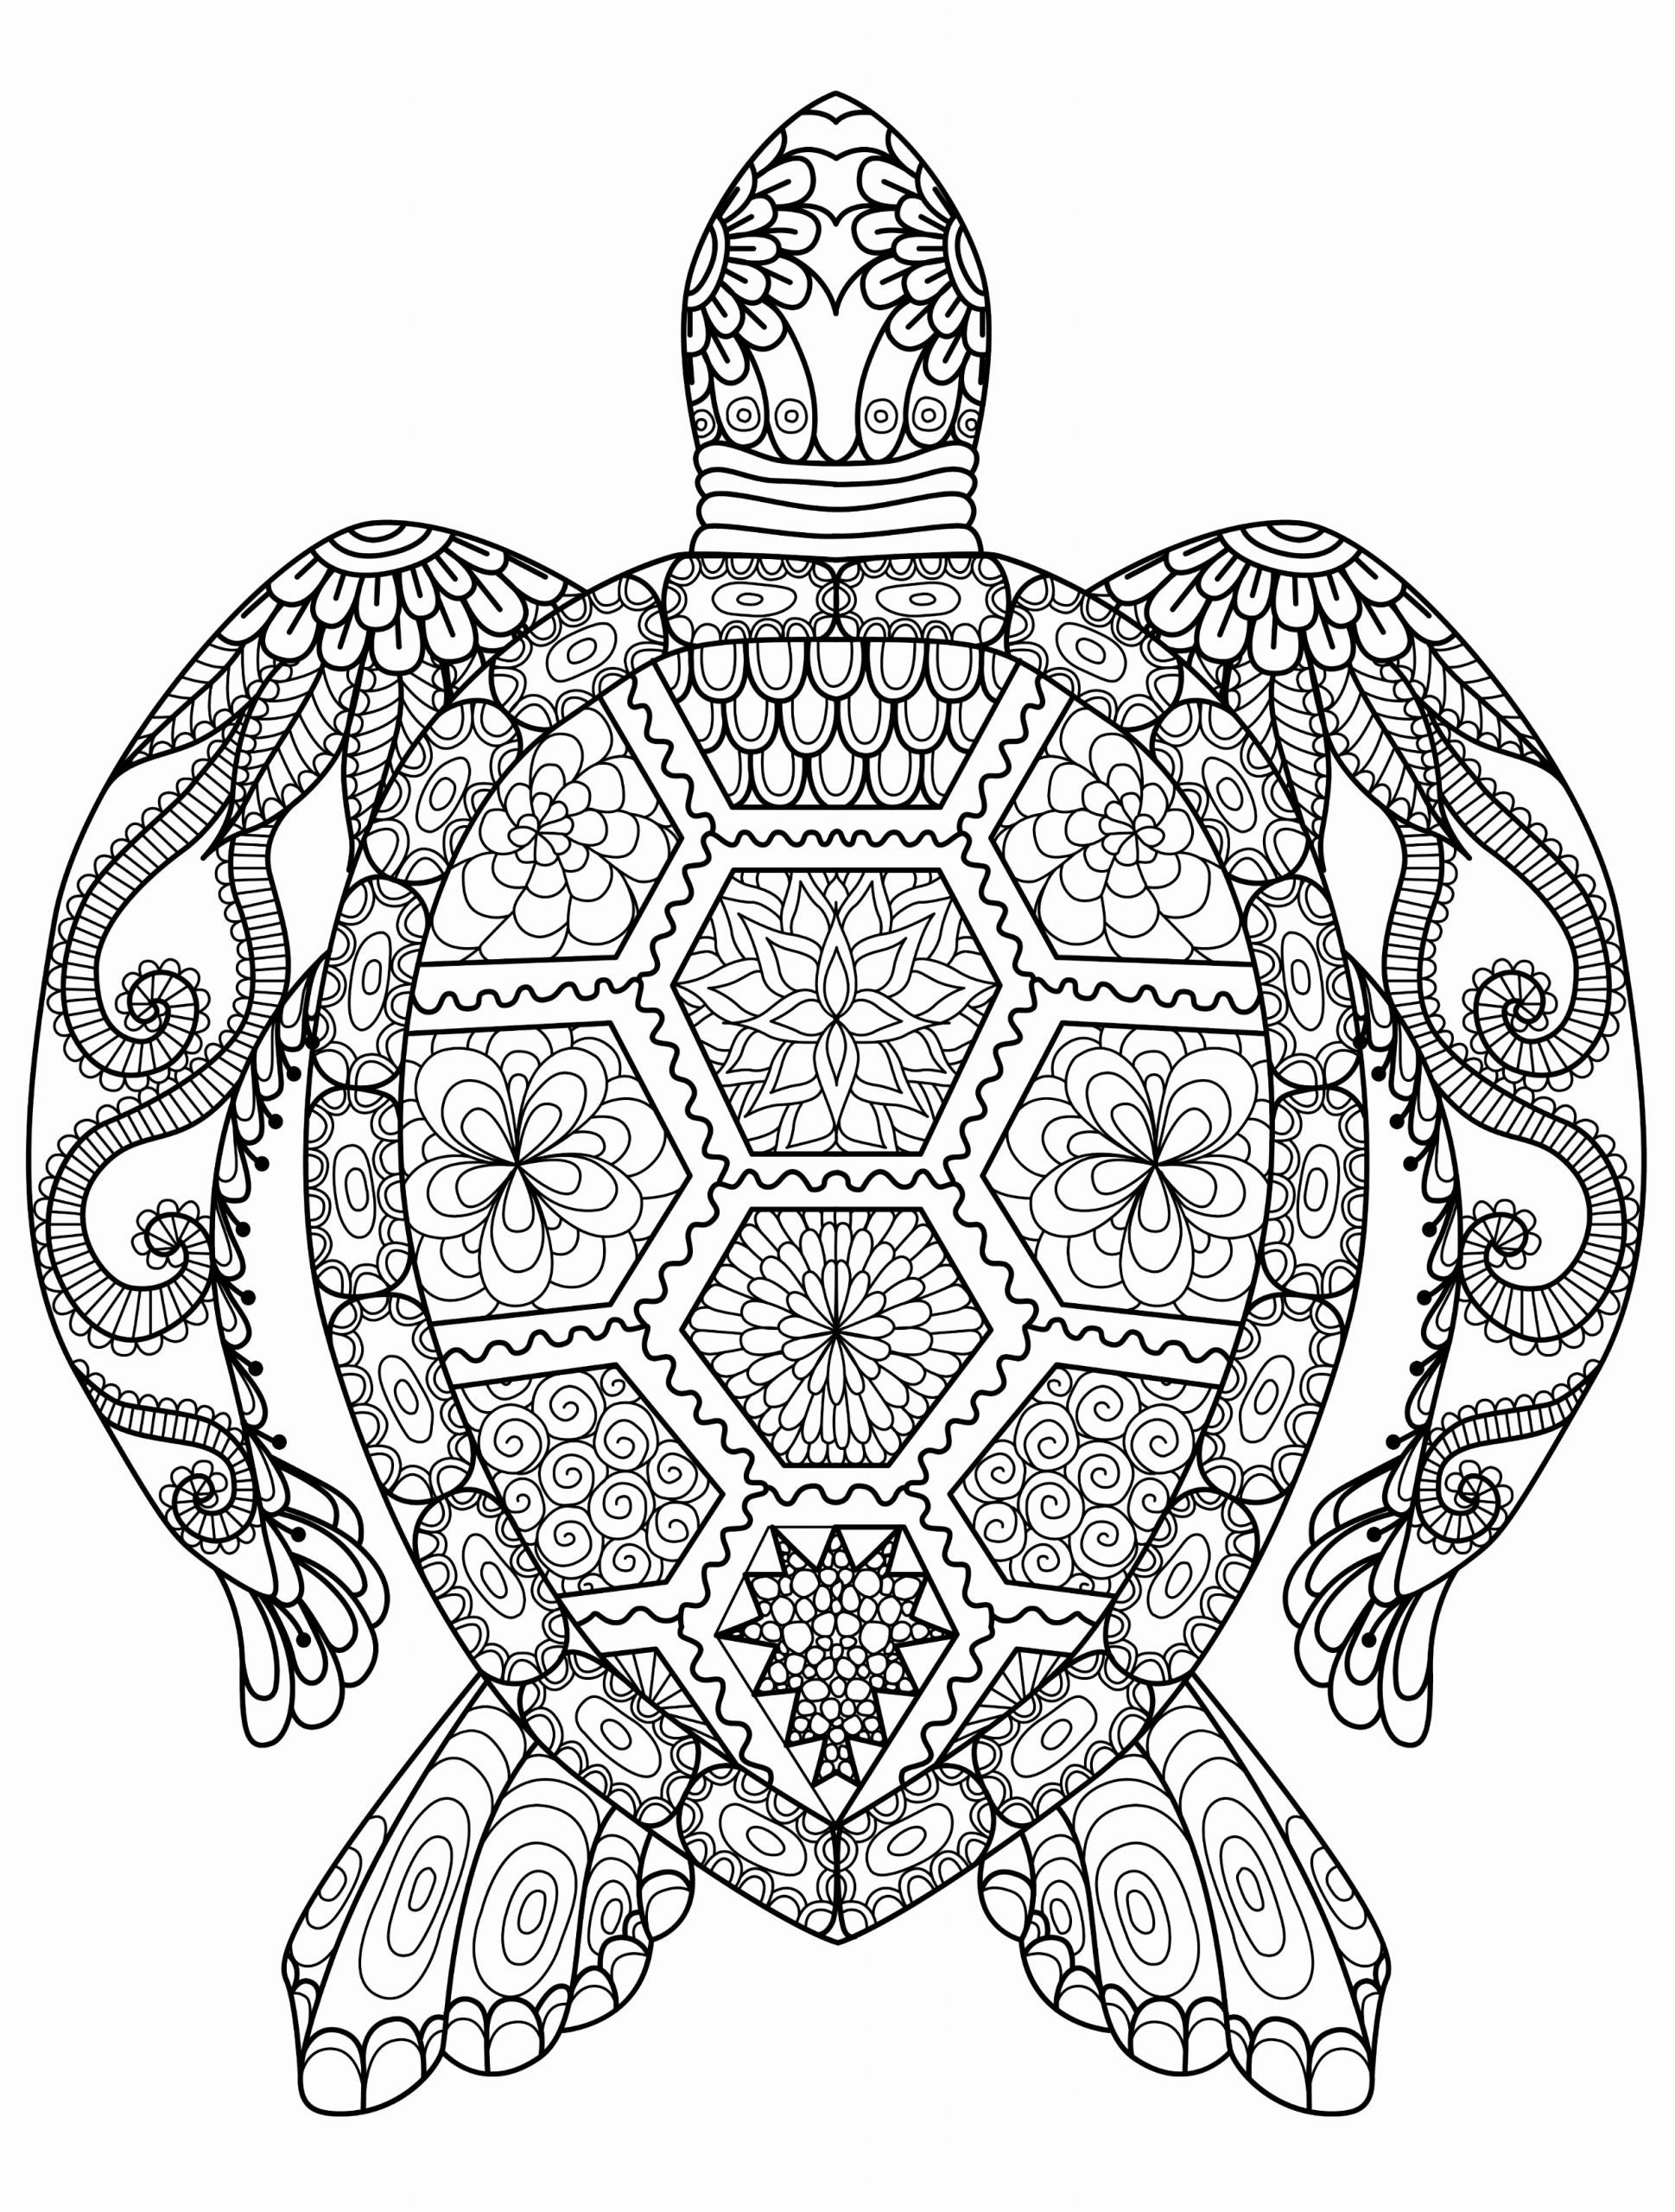 Animals Coloring Book Pdf Free Download Unique Sea Turtle Printable Coloring Pages At Getdra Turtle Coloring Pages Animal Coloring Books Mandala Coloring Pages